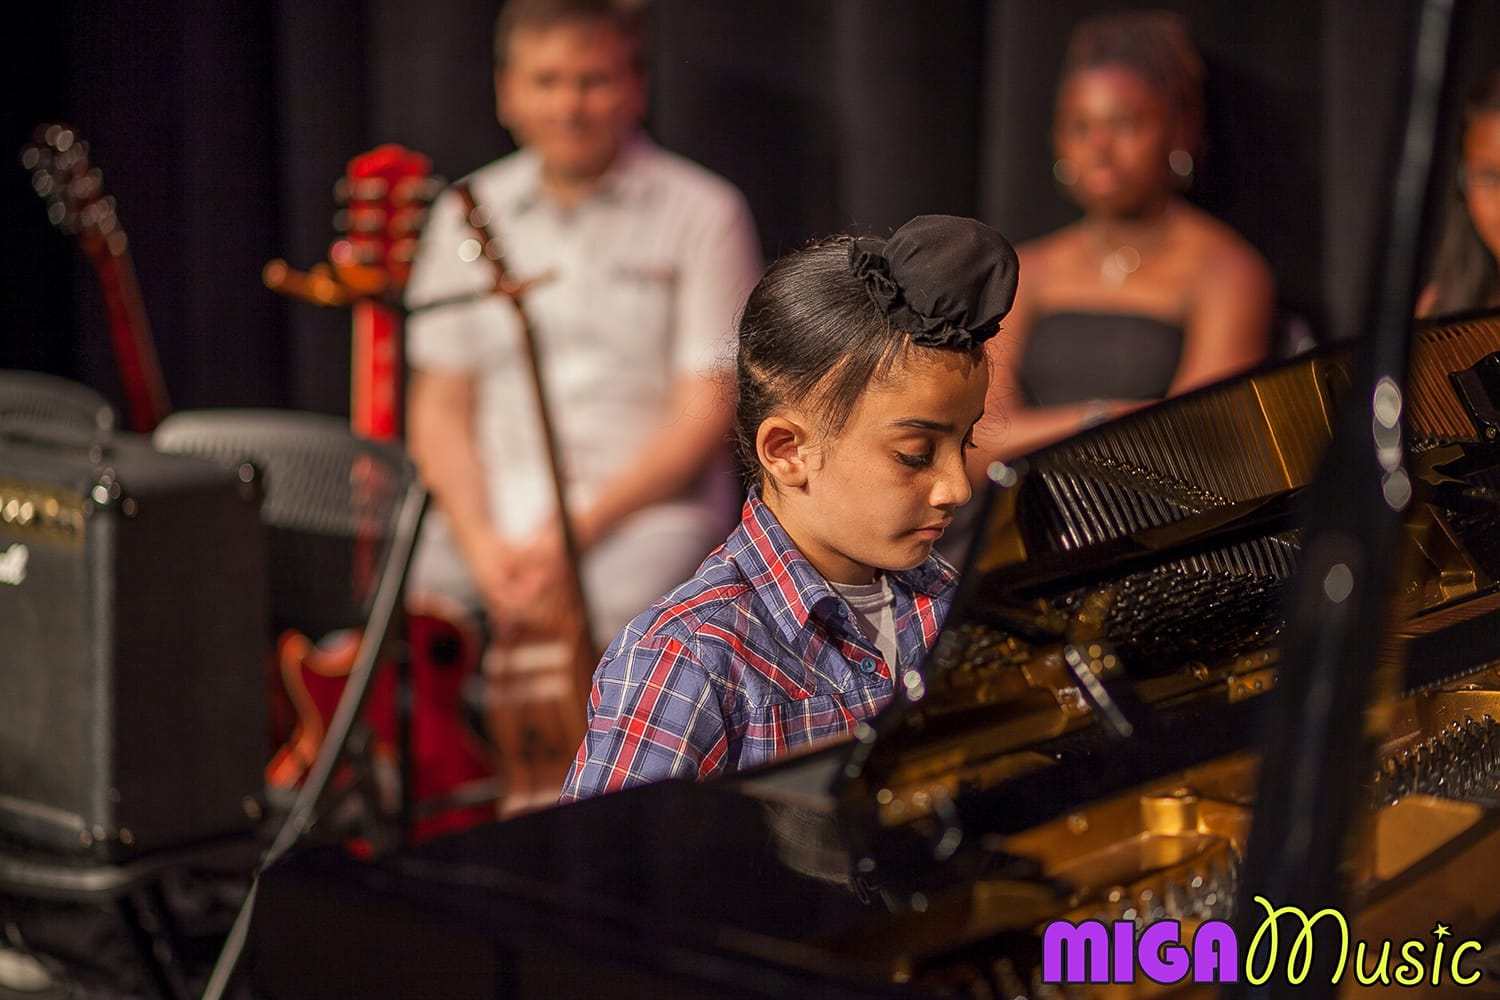 MIGA Music student Romit playing piano at our Recitals